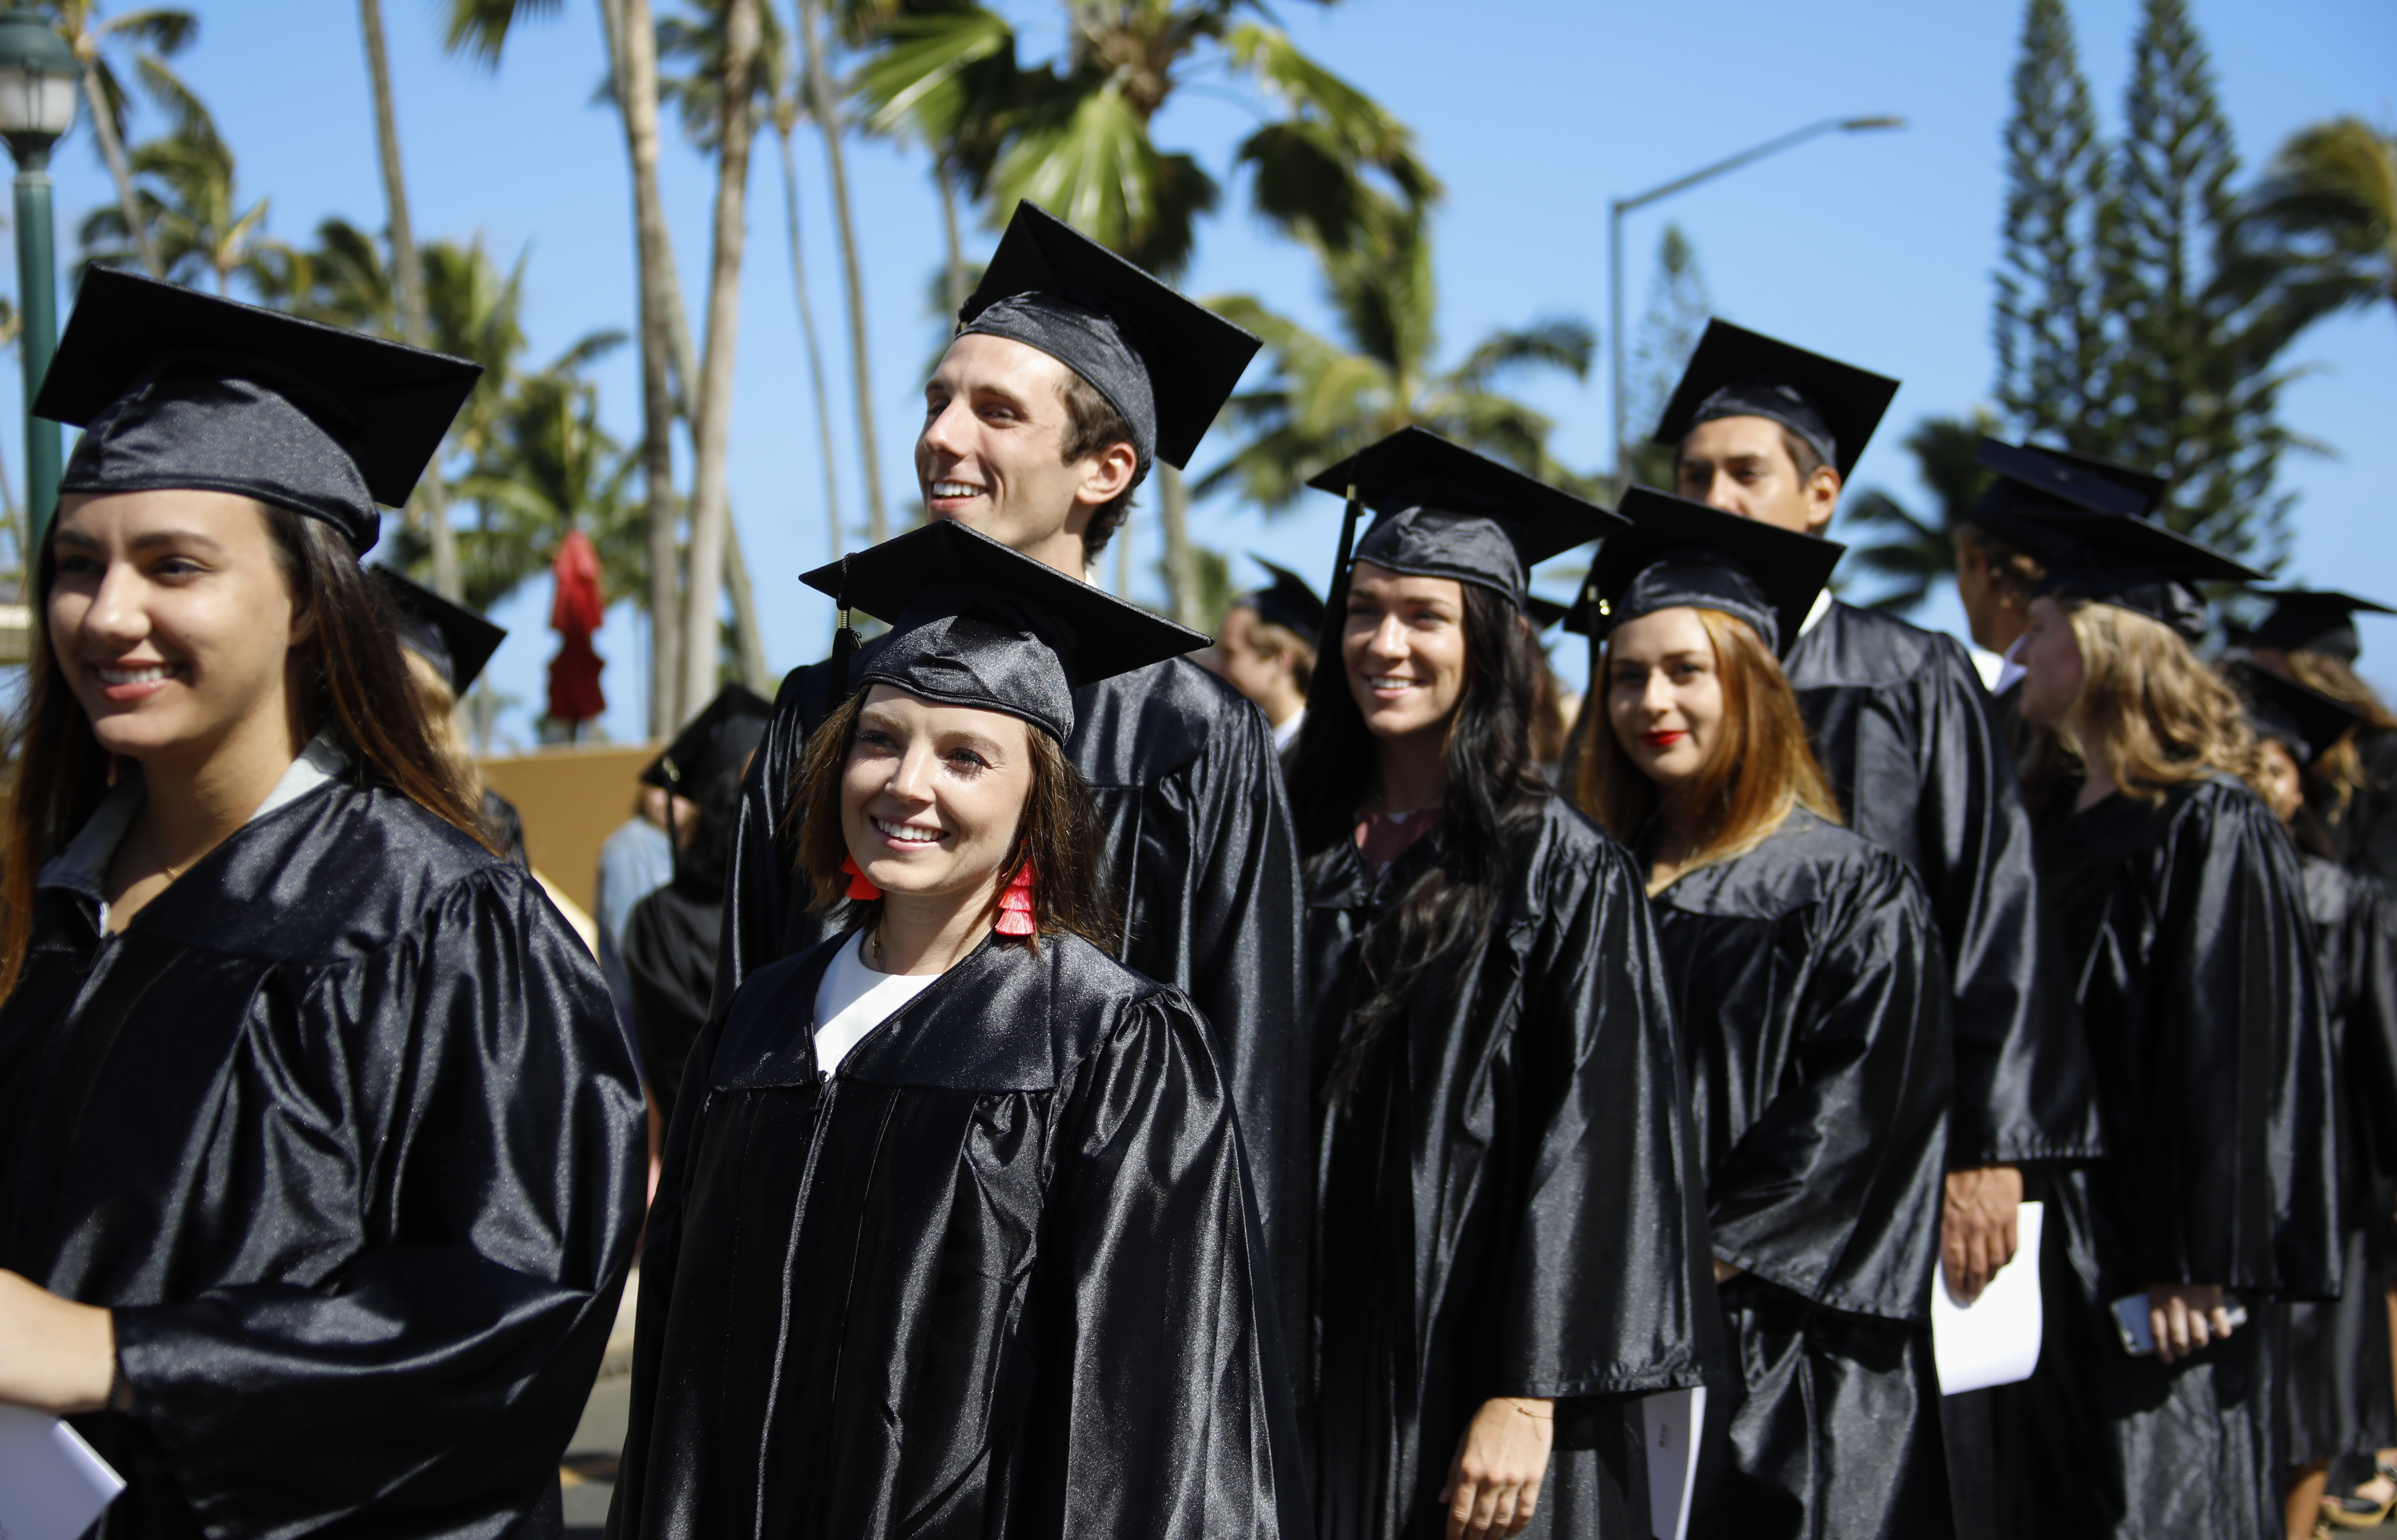 Students at BYU-Hawaii line up outside before the winter commencement ceremony on April 20, 2019.